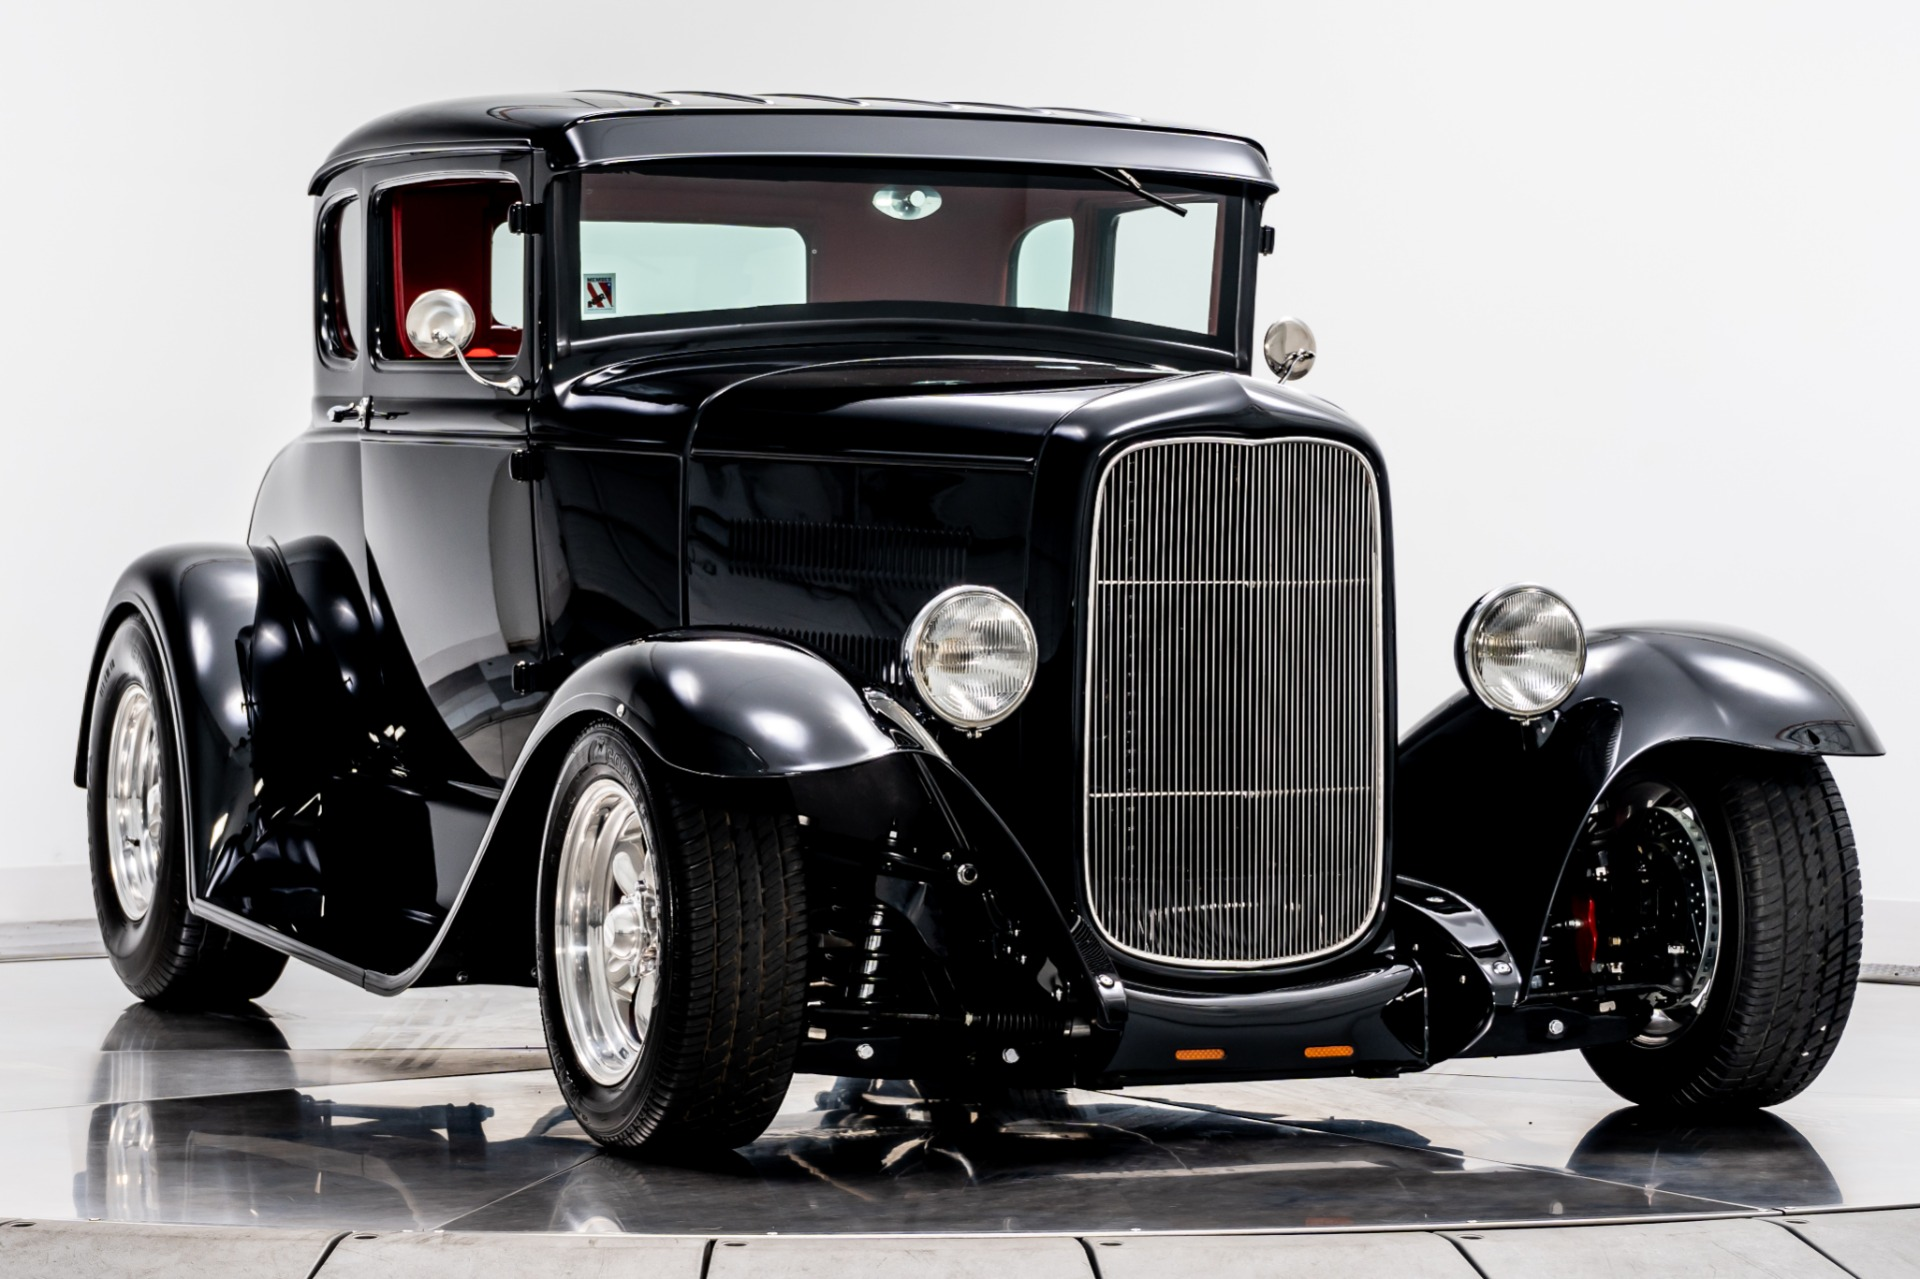 Used 1930 Ford Model A Hot Rod For Sale Sold Marshall Goldman Motor Sales Stock W21049